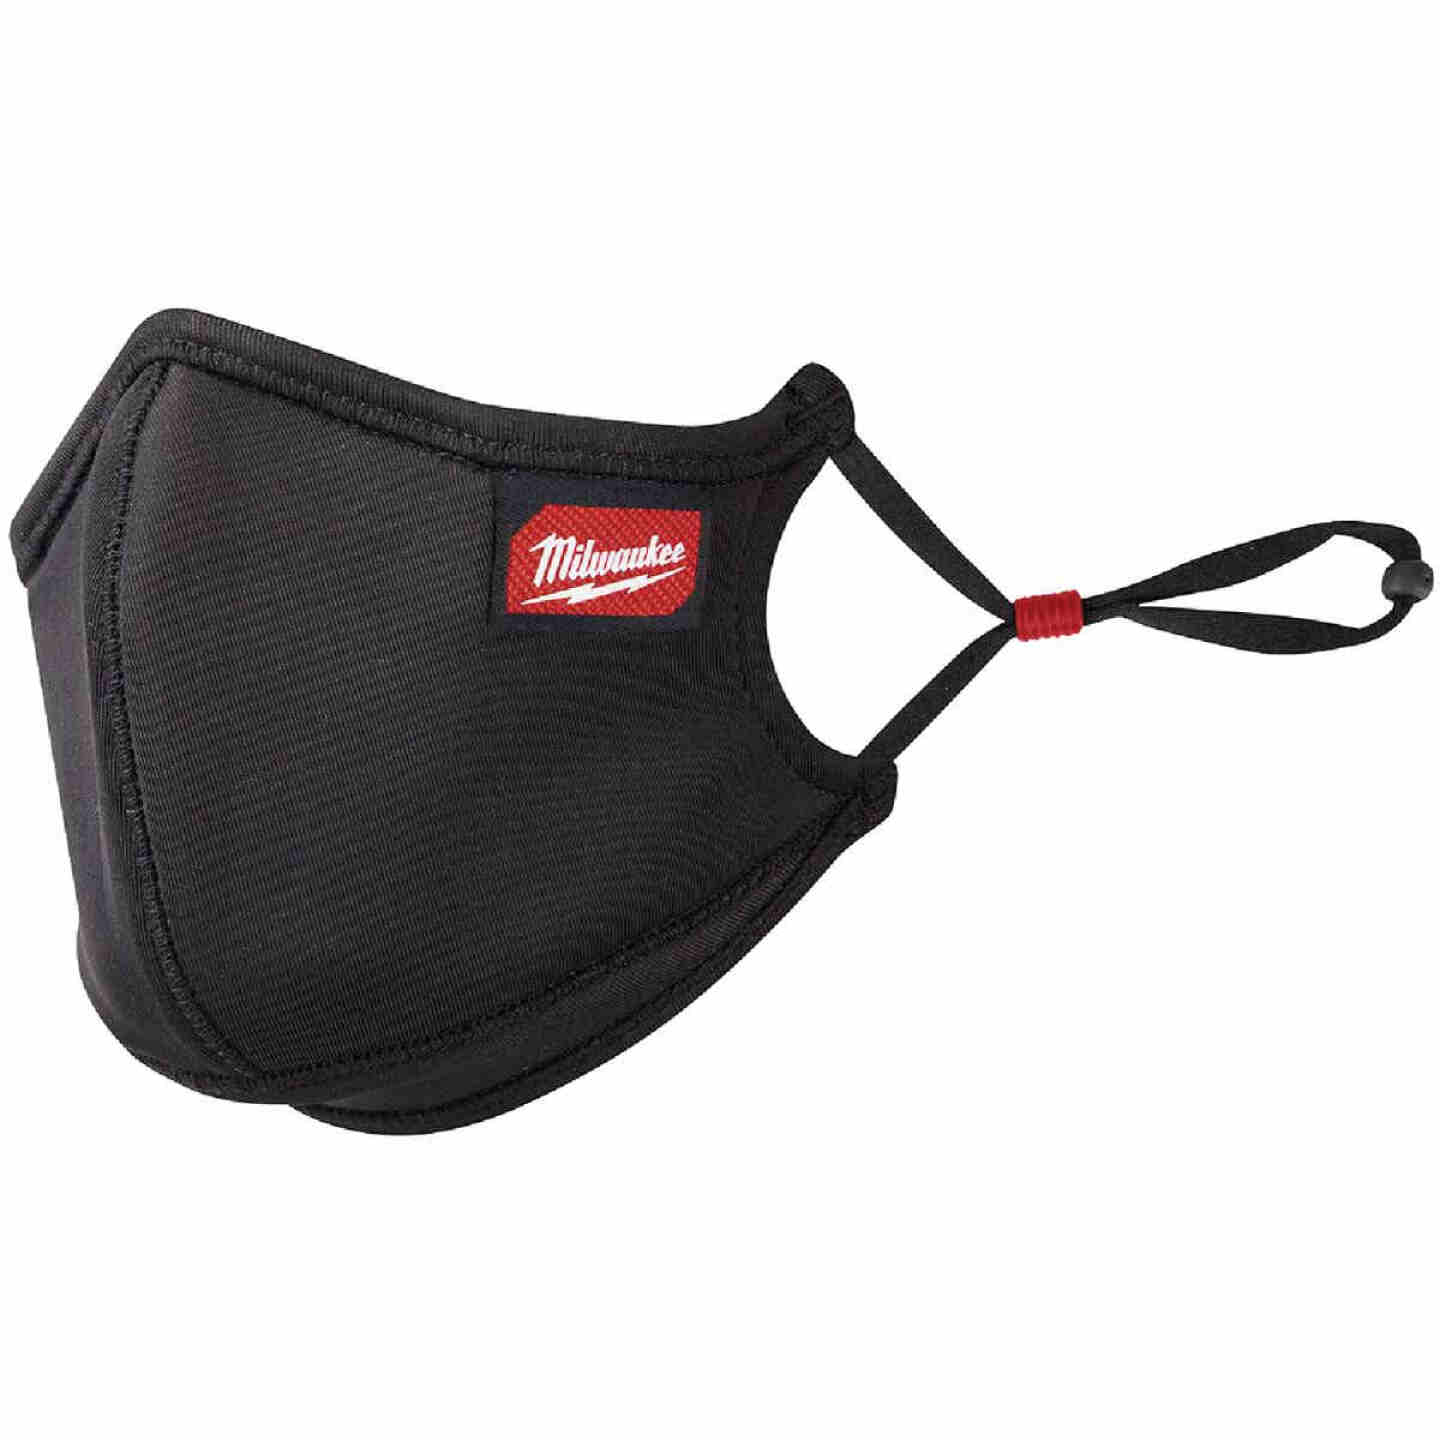 Milwaukee S/M 3-Layer Washable Performance Dust & Face Mask (3-Pack) Image 1